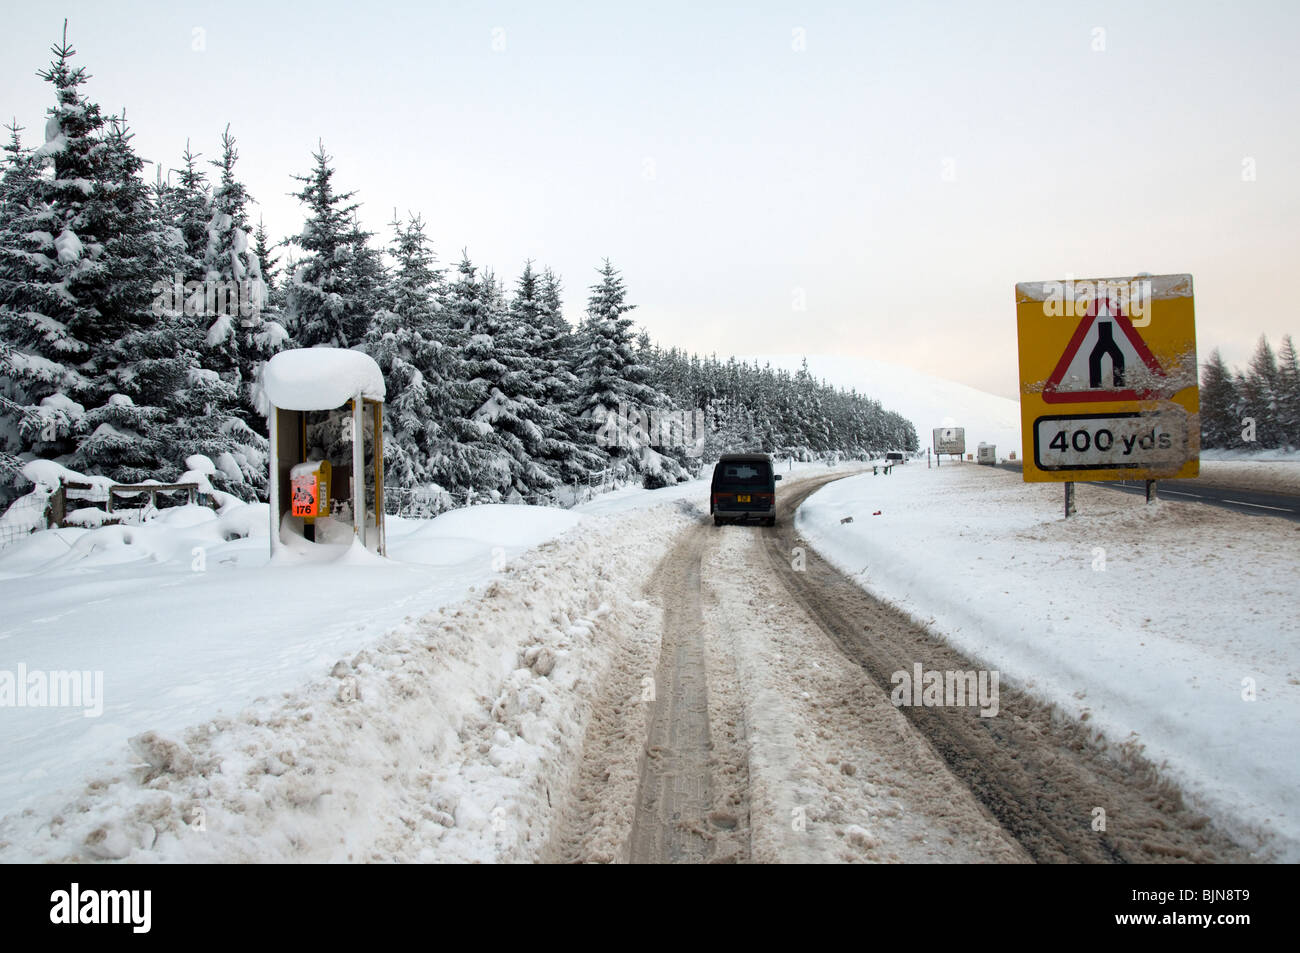 A lay by on the A9 road, near the Slochd summit, Invernesshire, Highland Region, Scotland, UK - Stock Image